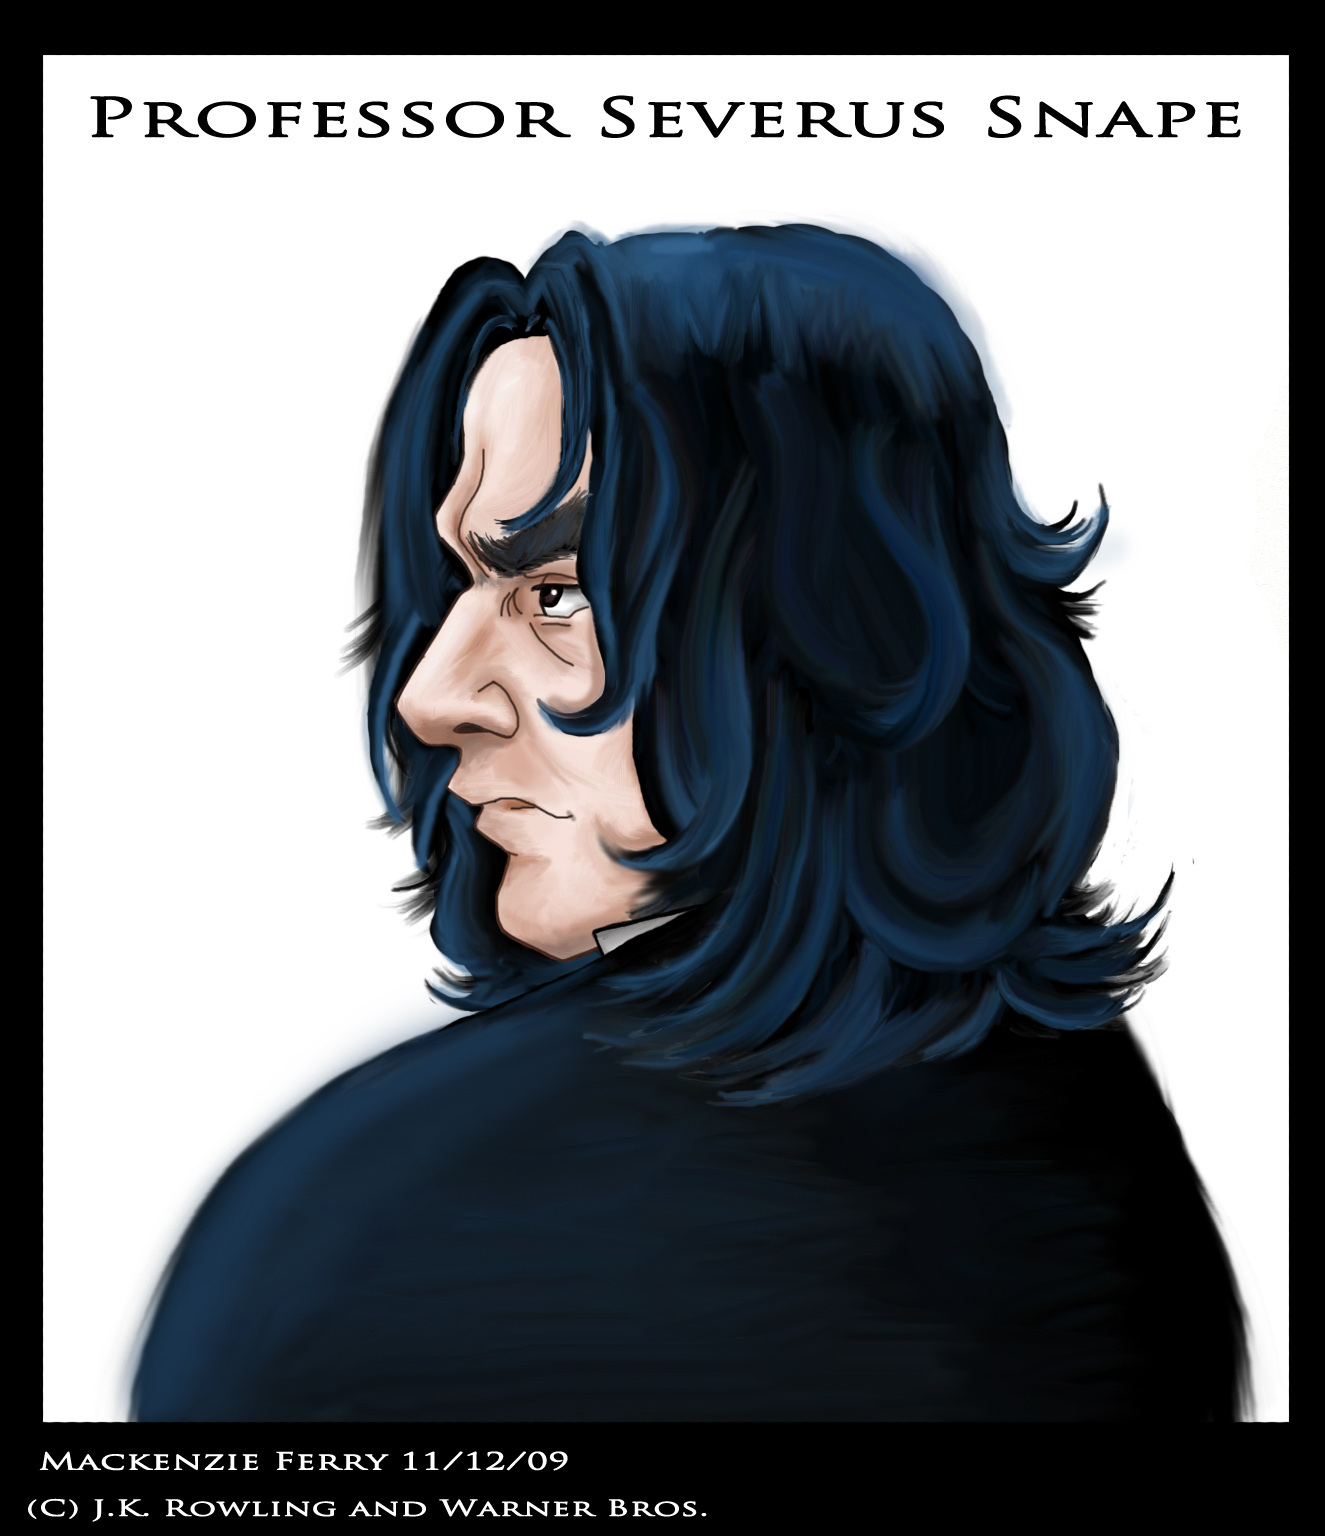 severus snape images hearts - photo #26